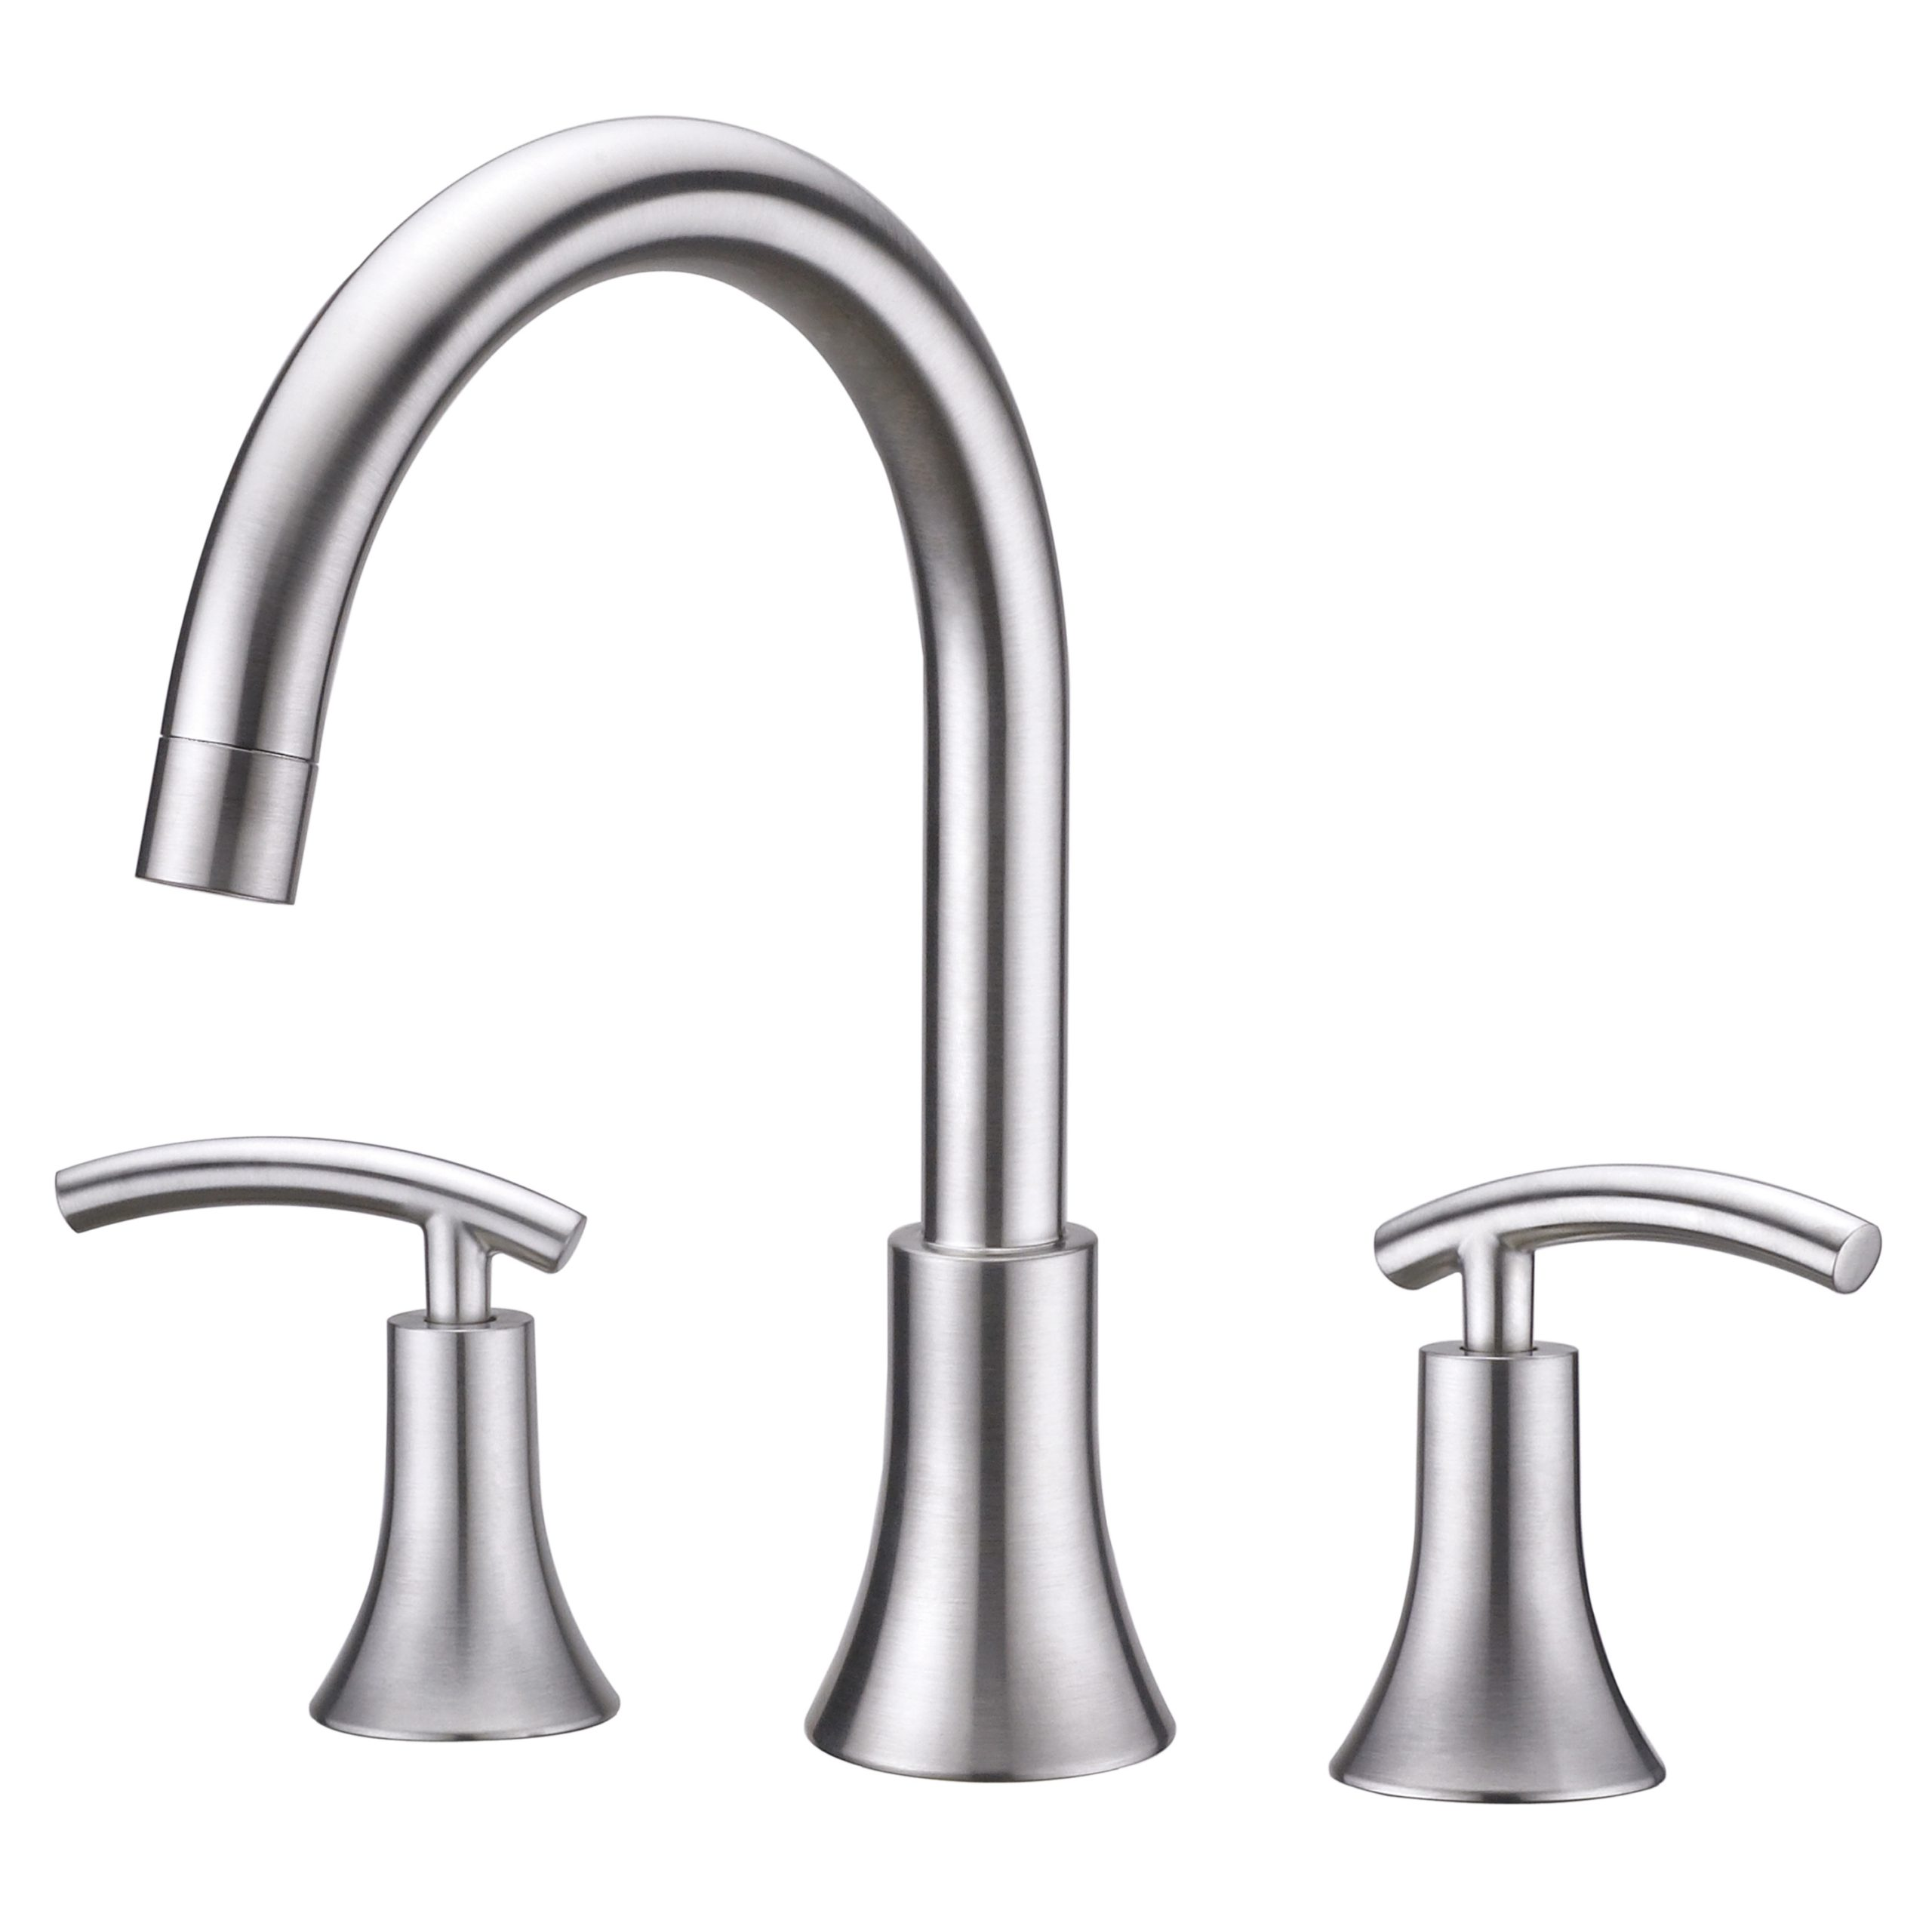 Sweep Collection Roman Tub Faucet Ultra Faucets